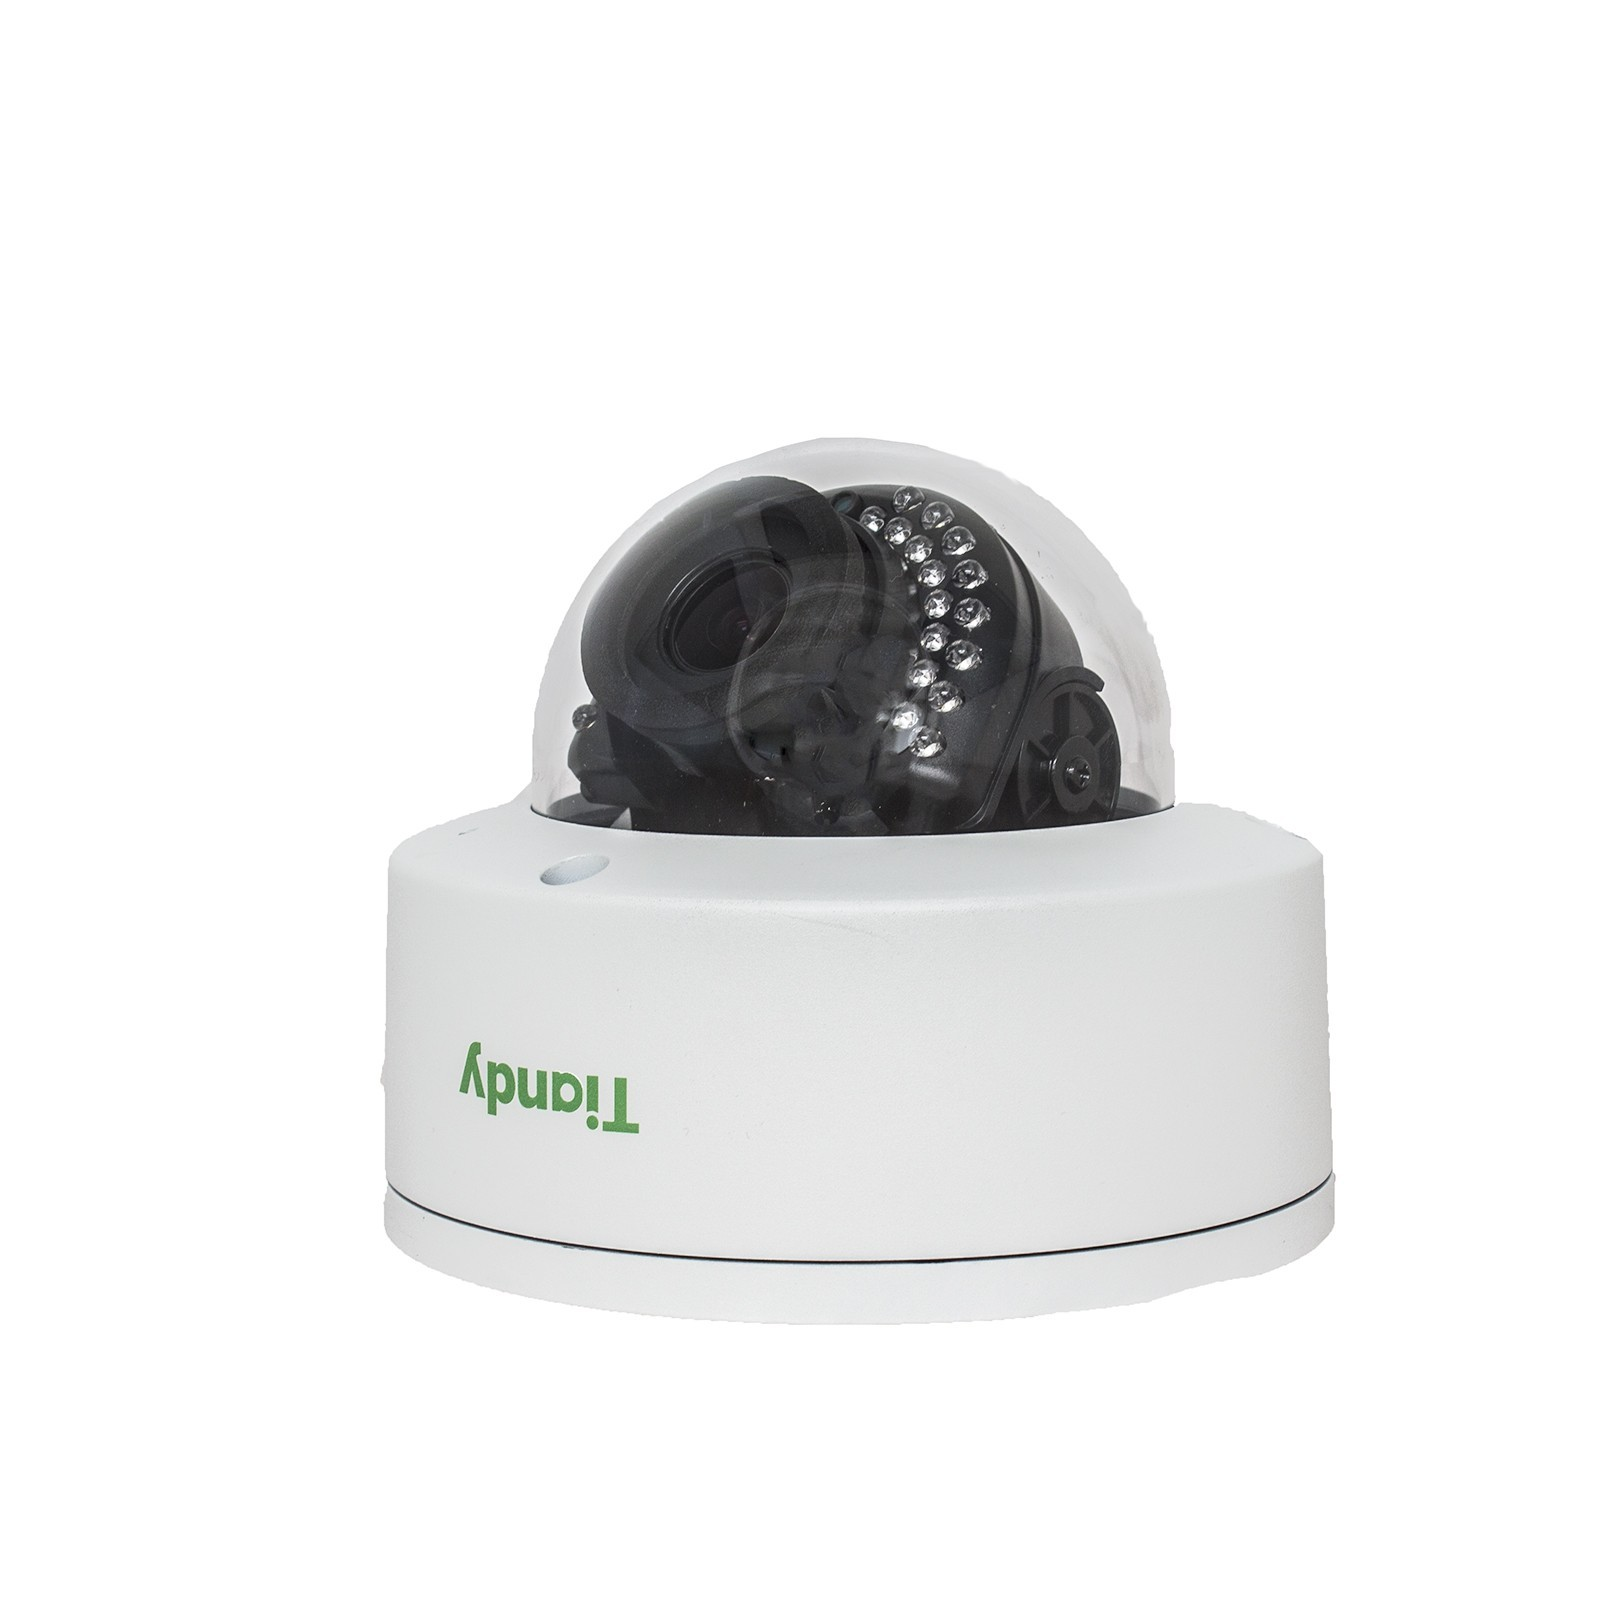 Tiandy TC-NC24V H.264 2MP 2.8-12MM Verifocal Lens Microphone WDR VCA Tripwire POE Audio SD-Card Smart IP Dome Camera